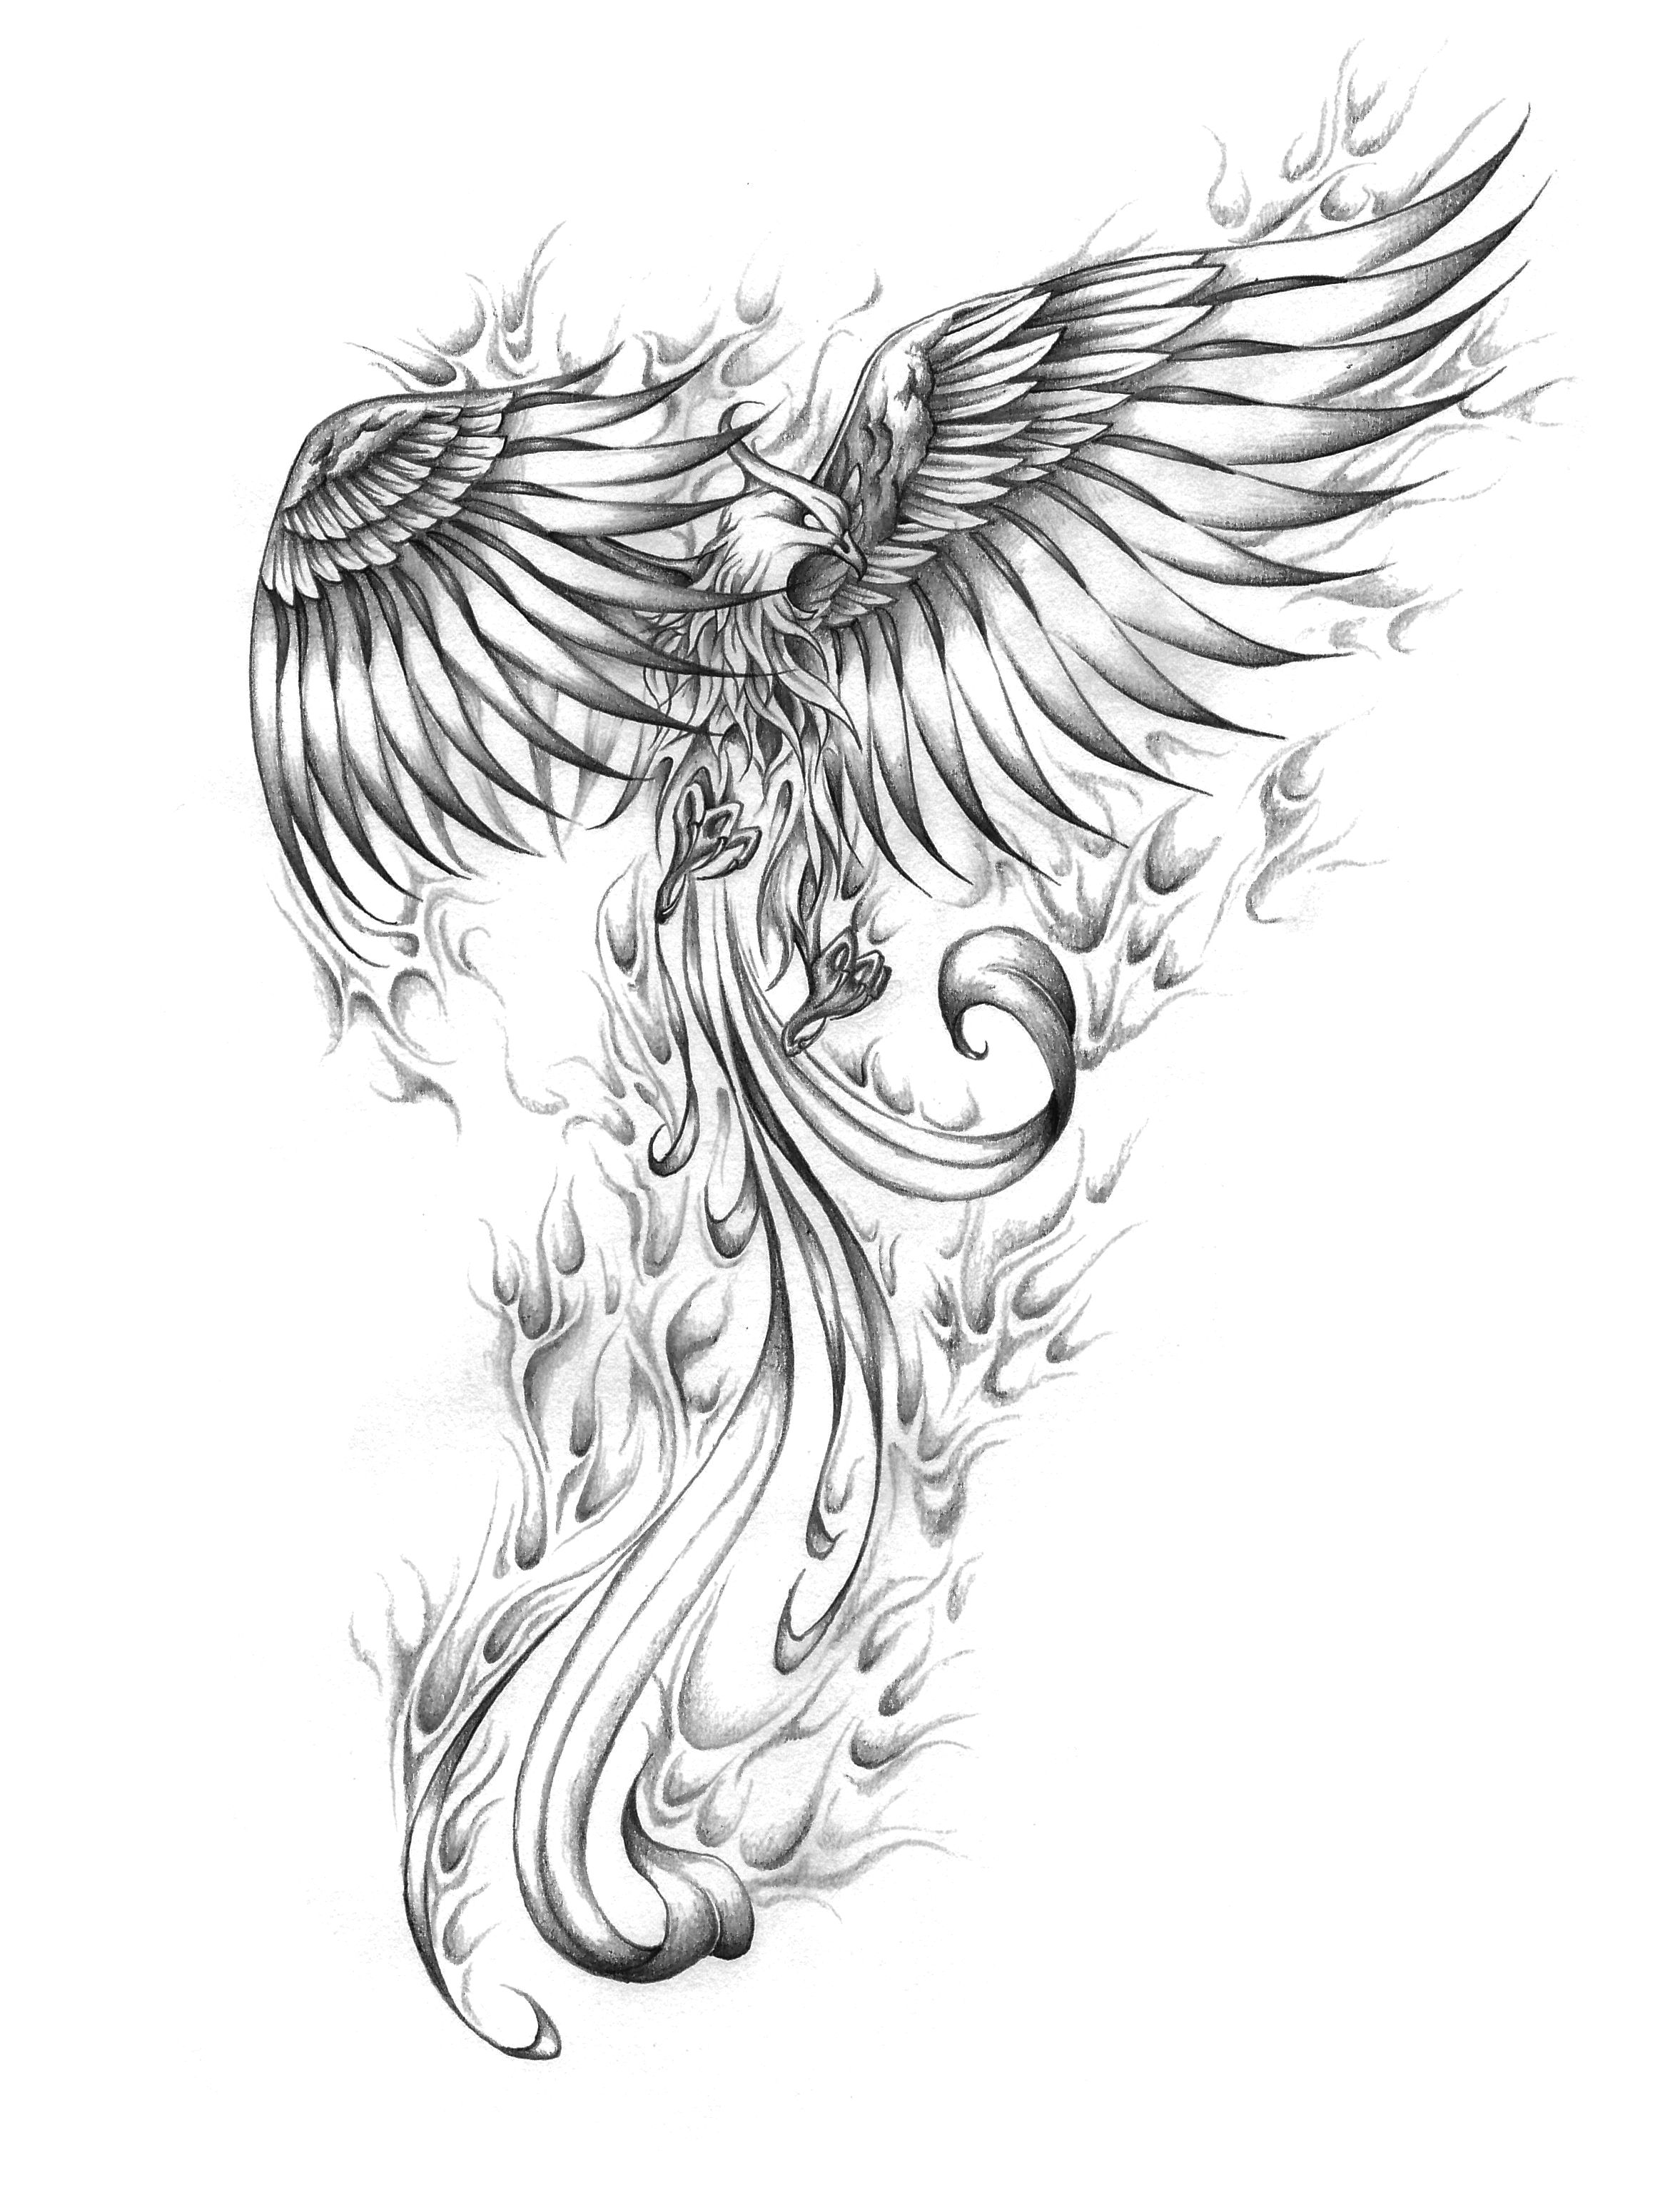 tattoo design artwork custom tattoo design wzory tattoo pinterest custom tattoo tattoo. Black Bedroom Furniture Sets. Home Design Ideas